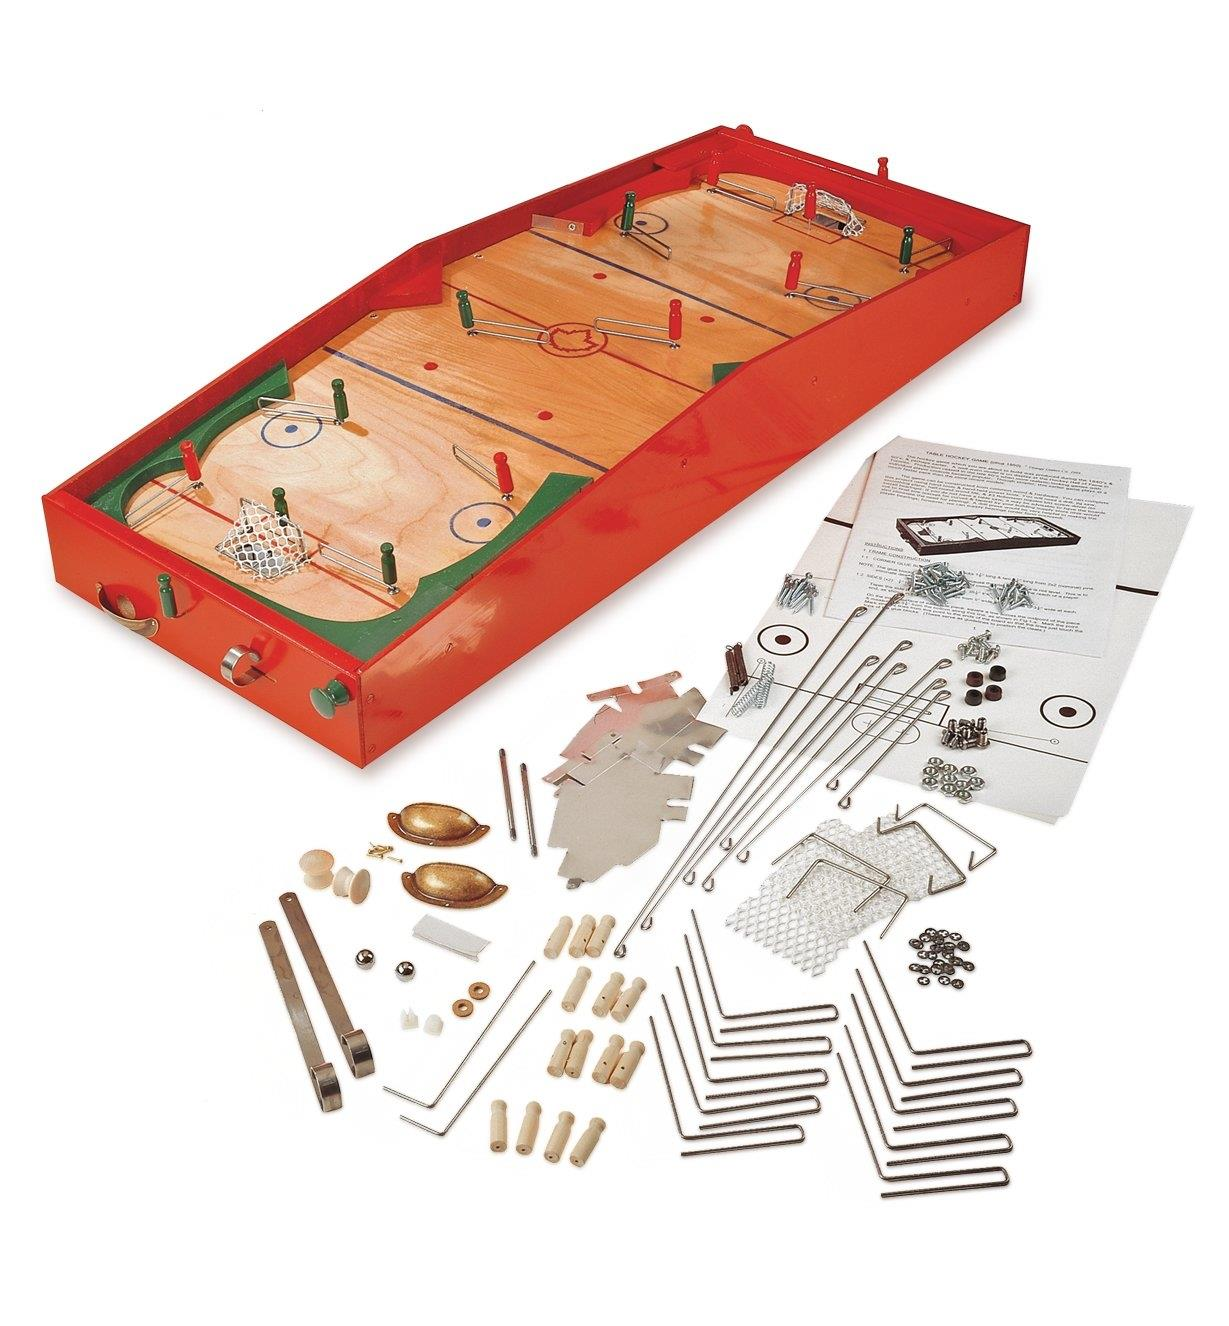 50K4001 - Lee Valley Table Hockey Hardware Kit